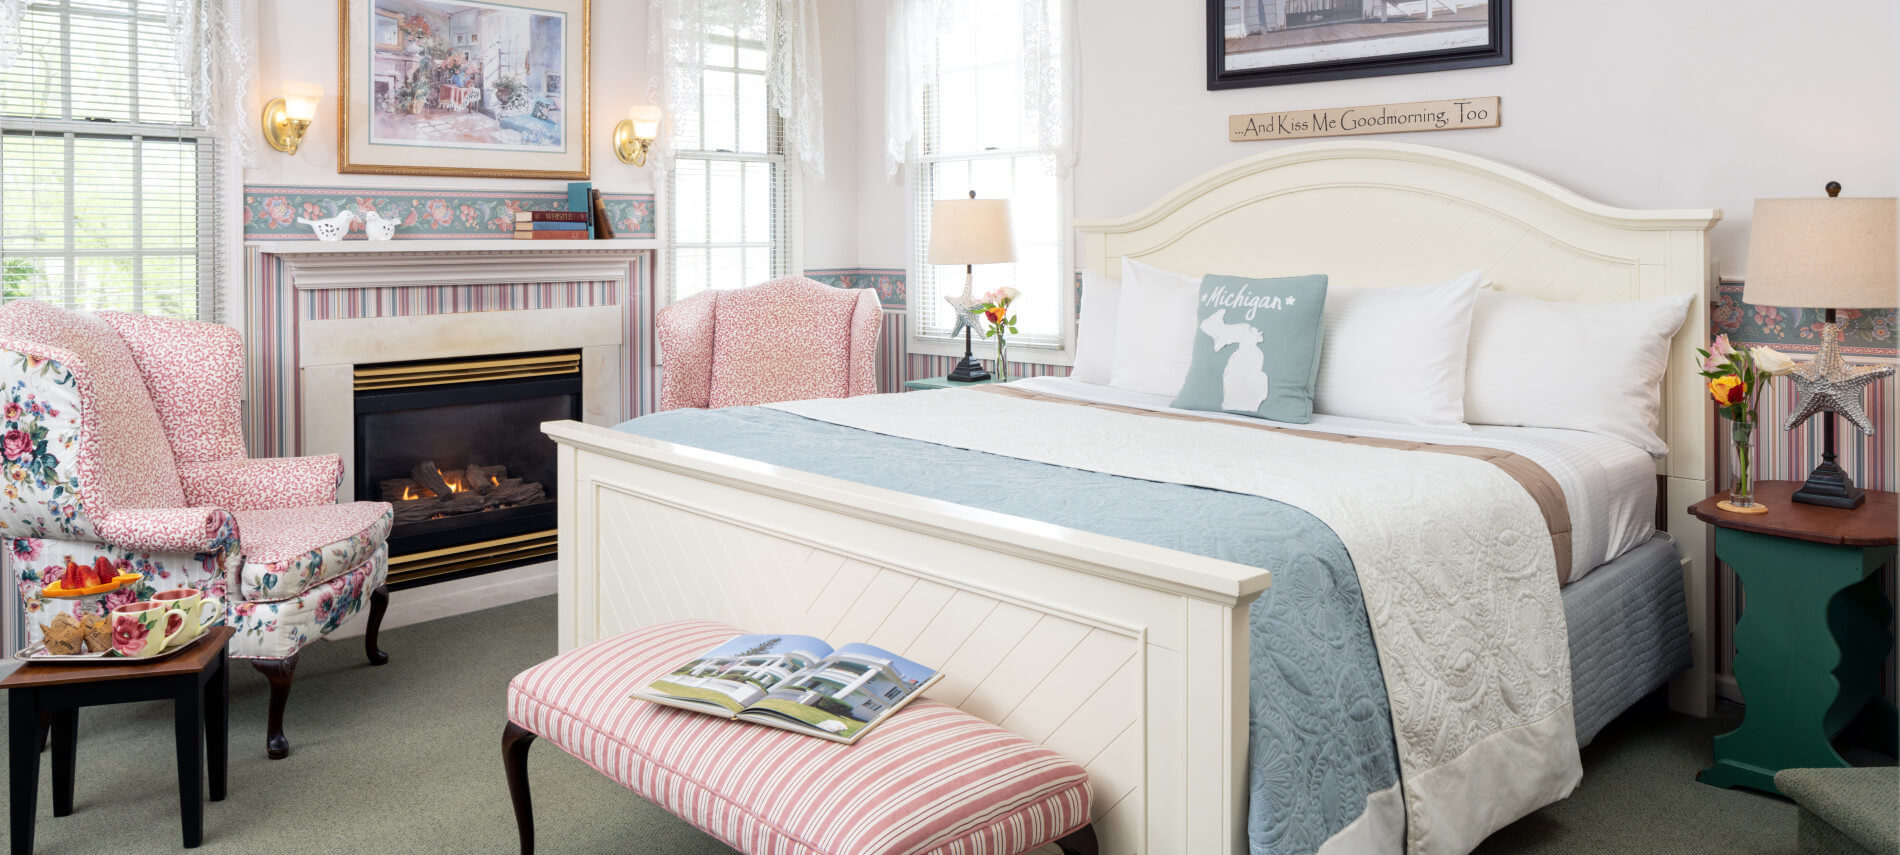 white king size bed with blue coverings, fireplace, flowered Queen Anne Chairs, three windows with lace sheers, striped bench